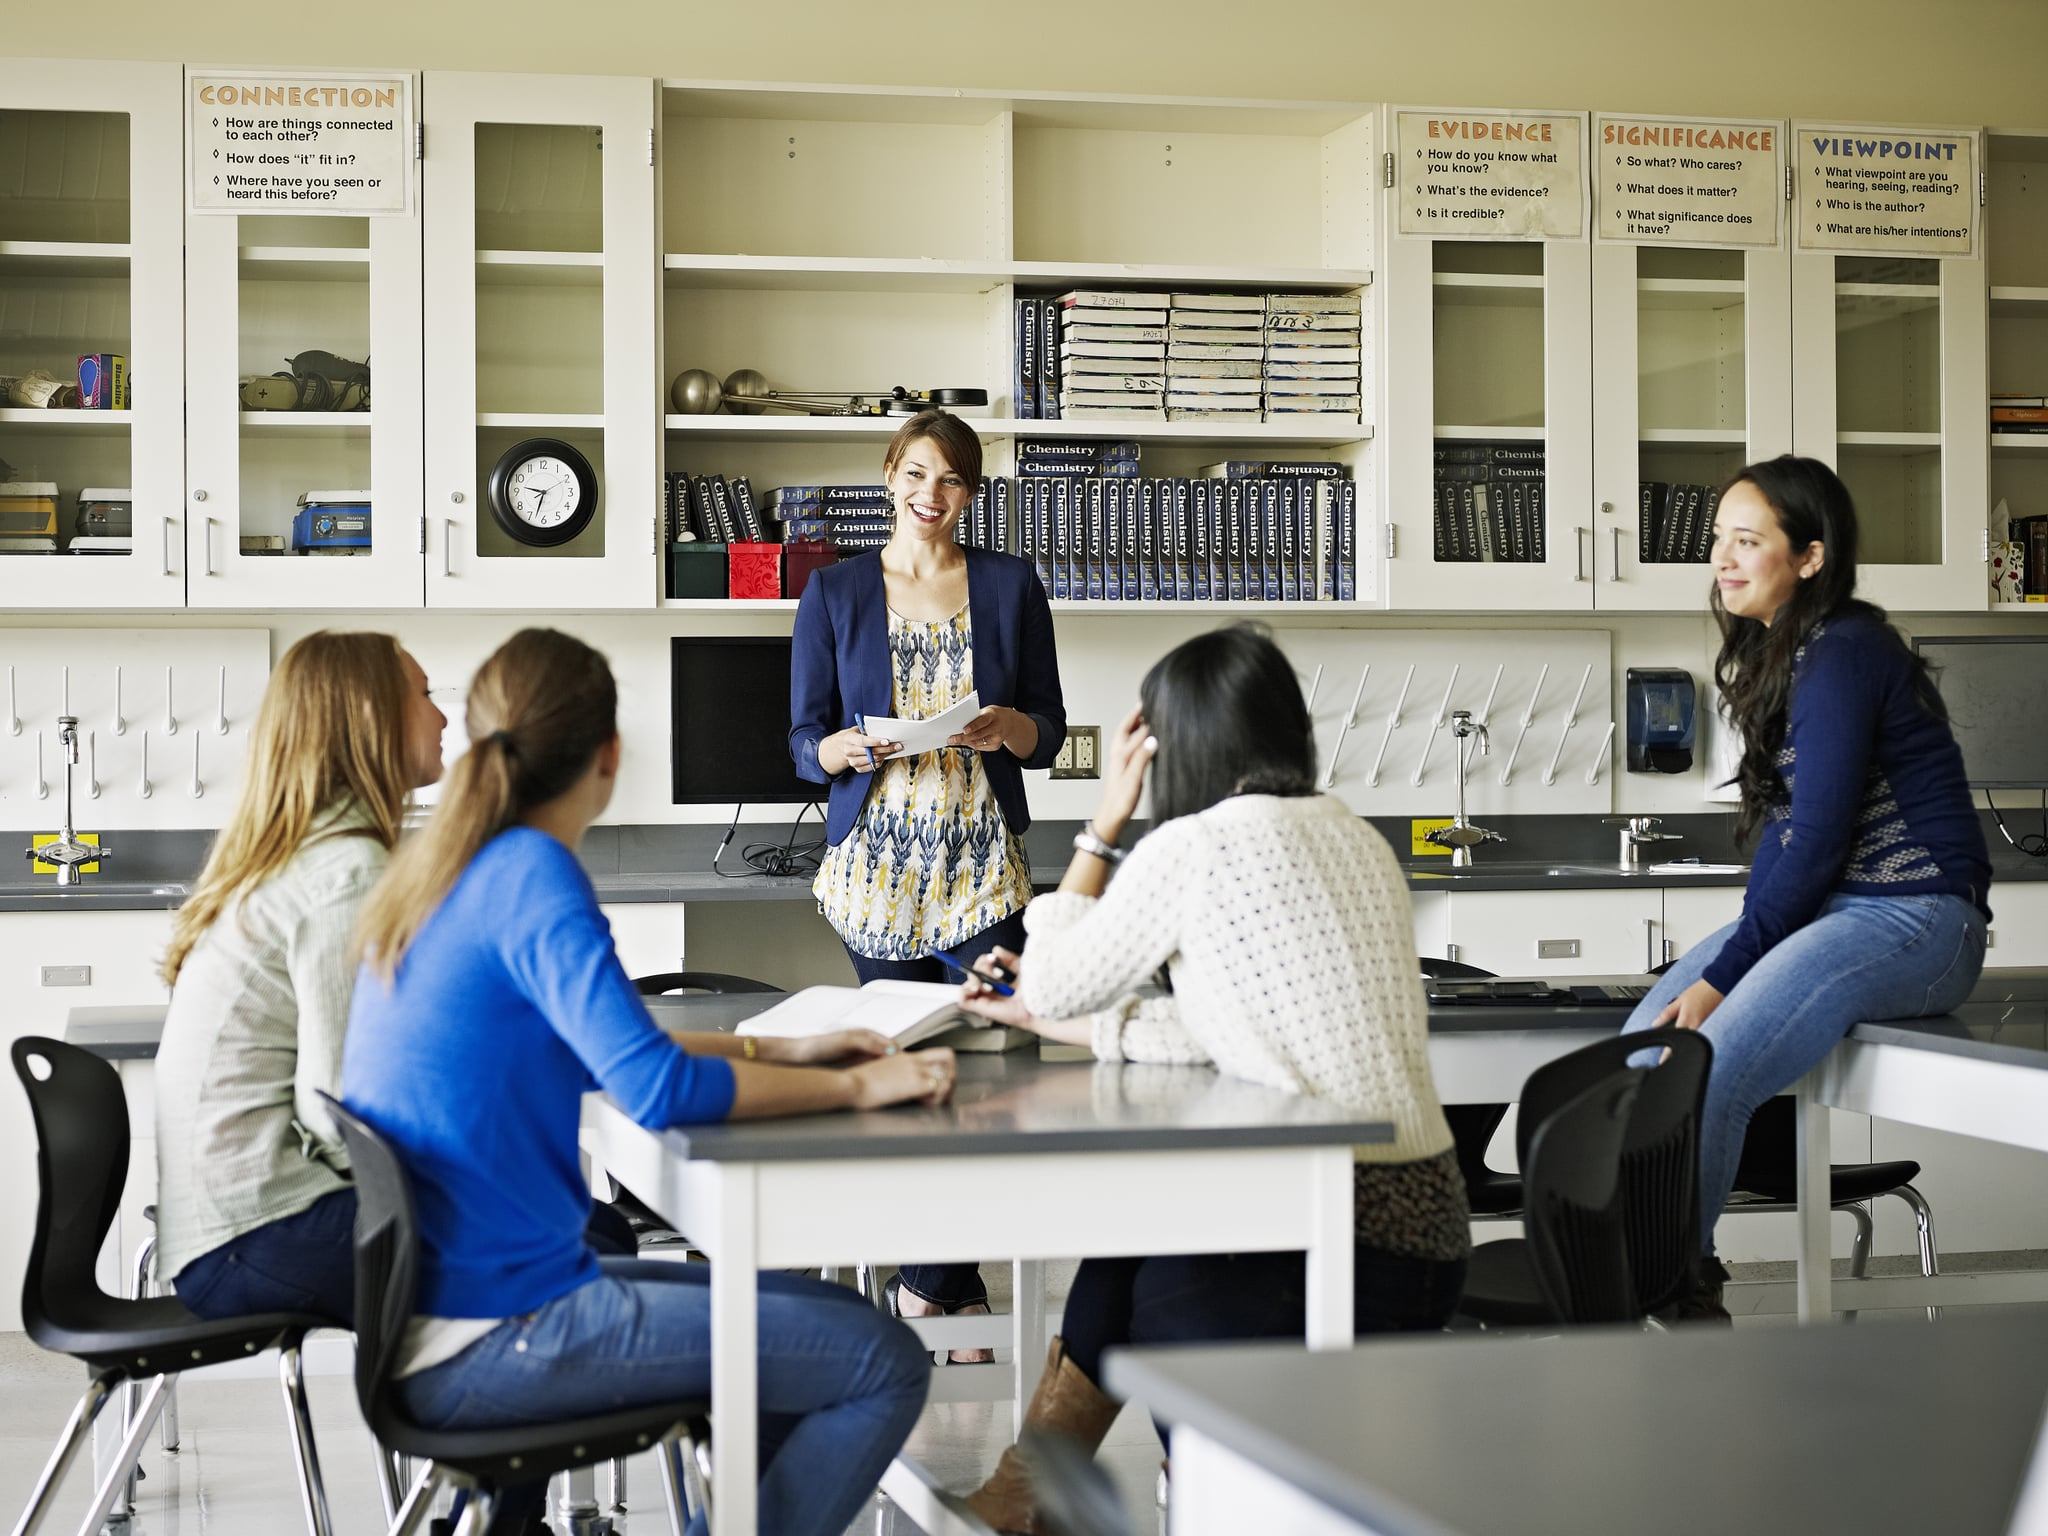 Female teacher standing in science lab classroom in discussion with a group of female students